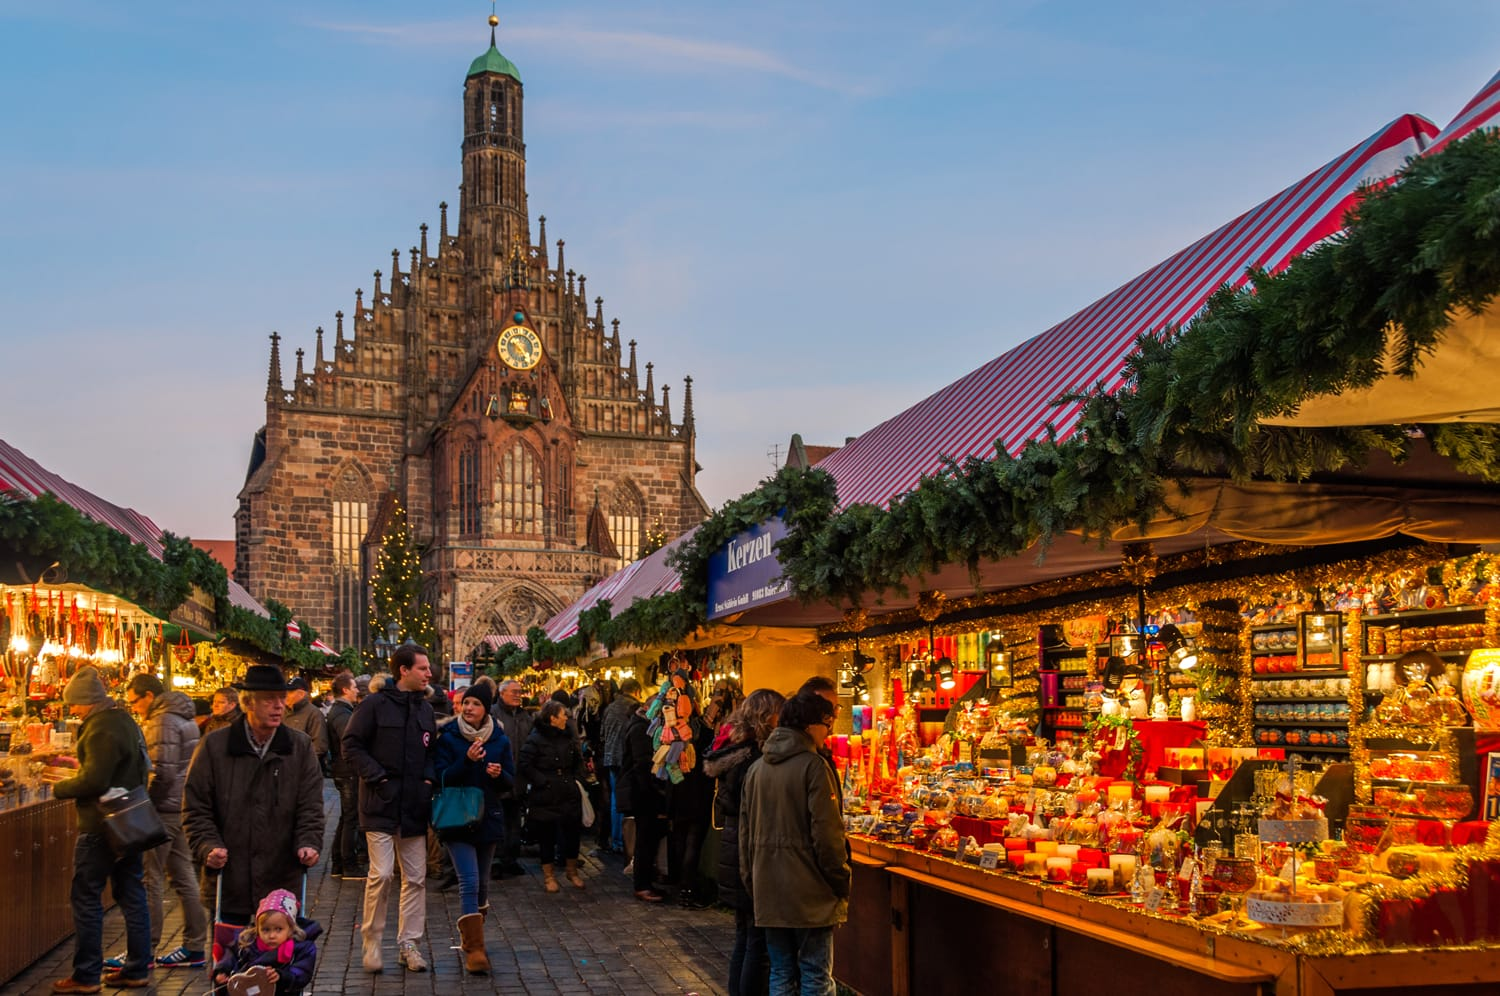 Nuremberg's Christmas Market is one of Germany's oldest Christmas fairs dating back to the 16th century.